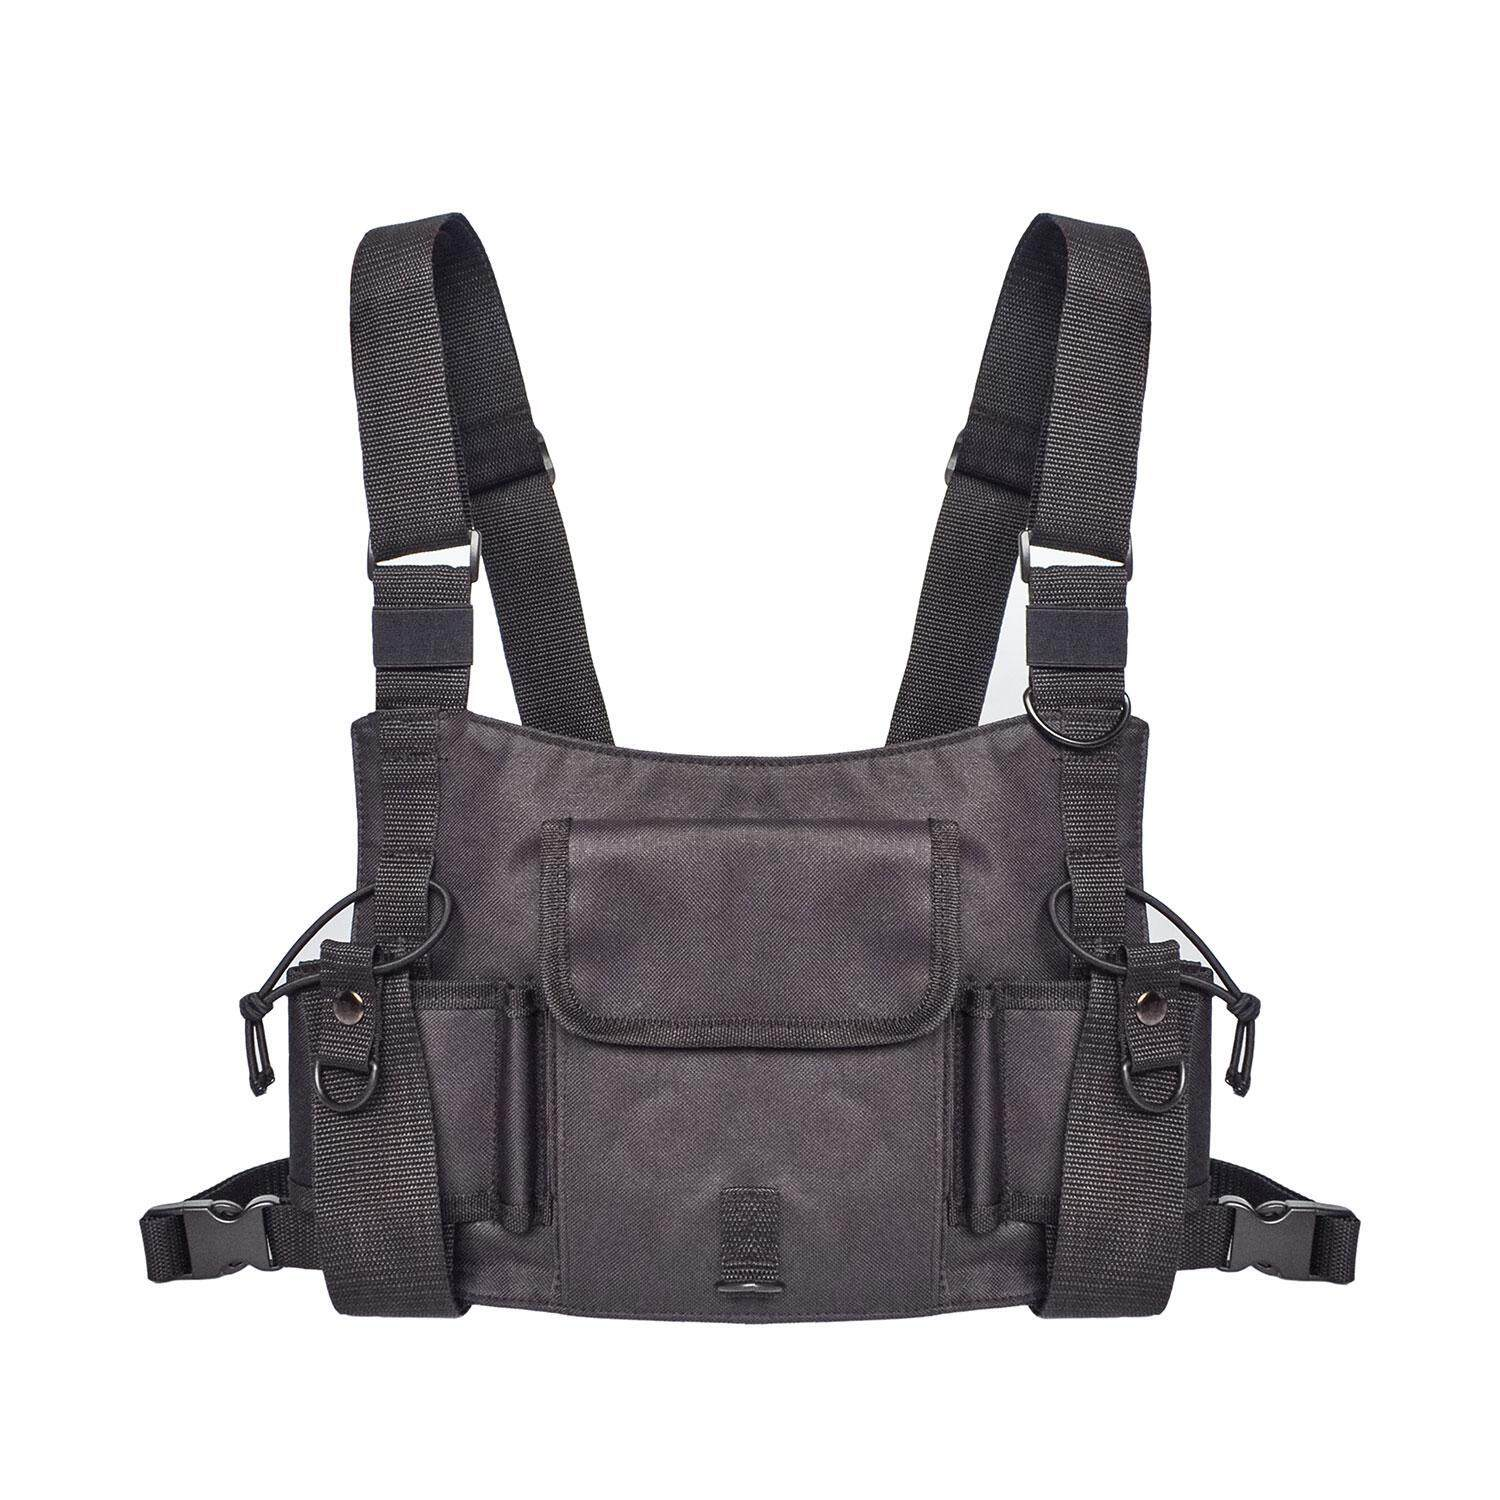 Niceeshop Universal Radio Wireless Caller Harness Chest Rig Pack Pocket Bag Holster Vest By Nicee Shop.